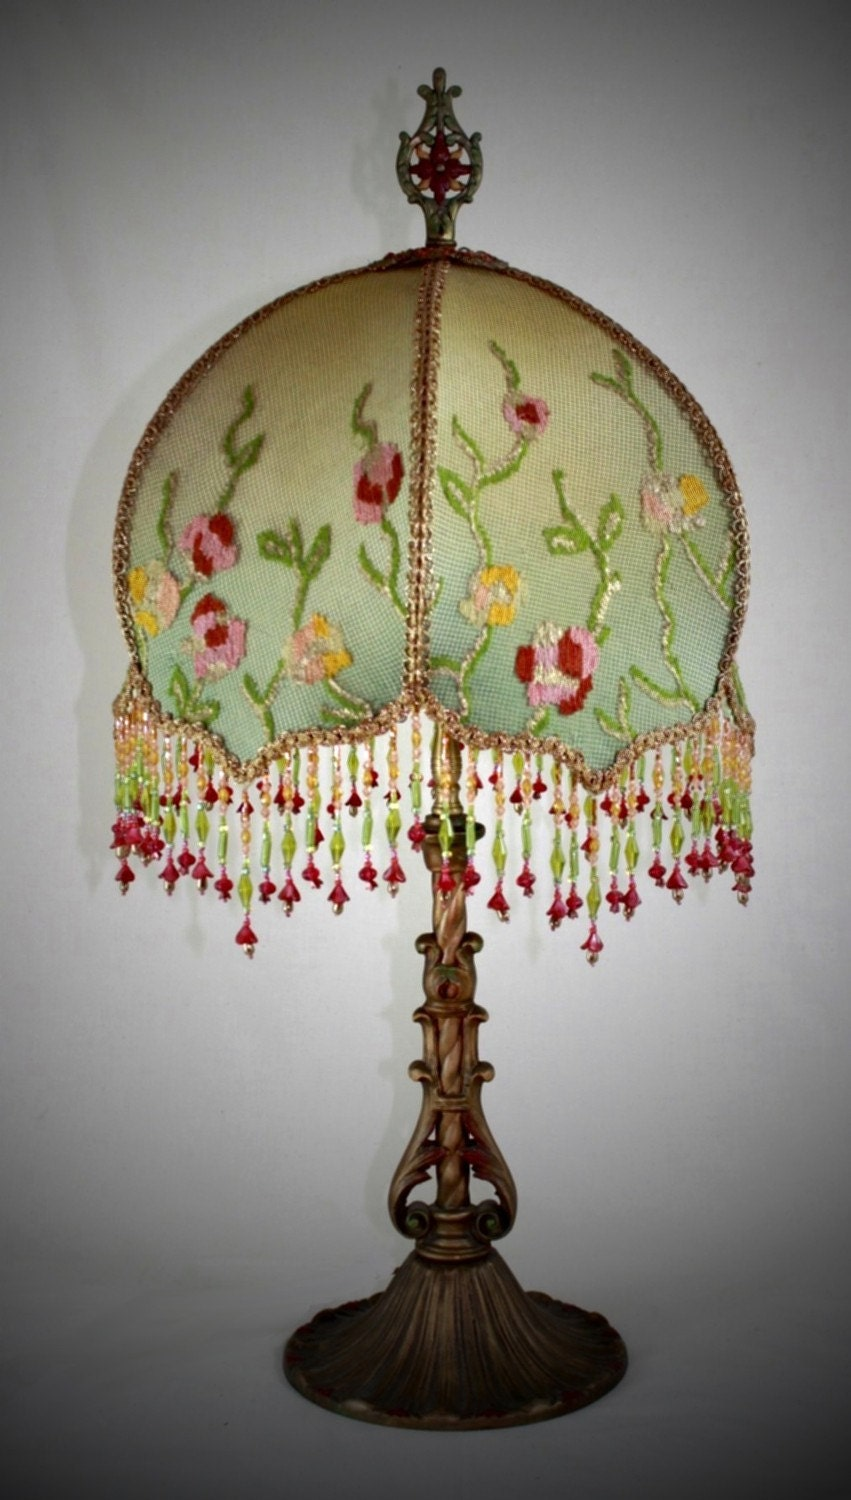 Hold For Bffd Antique Lamp Handsewn Lampshade Flower Garden